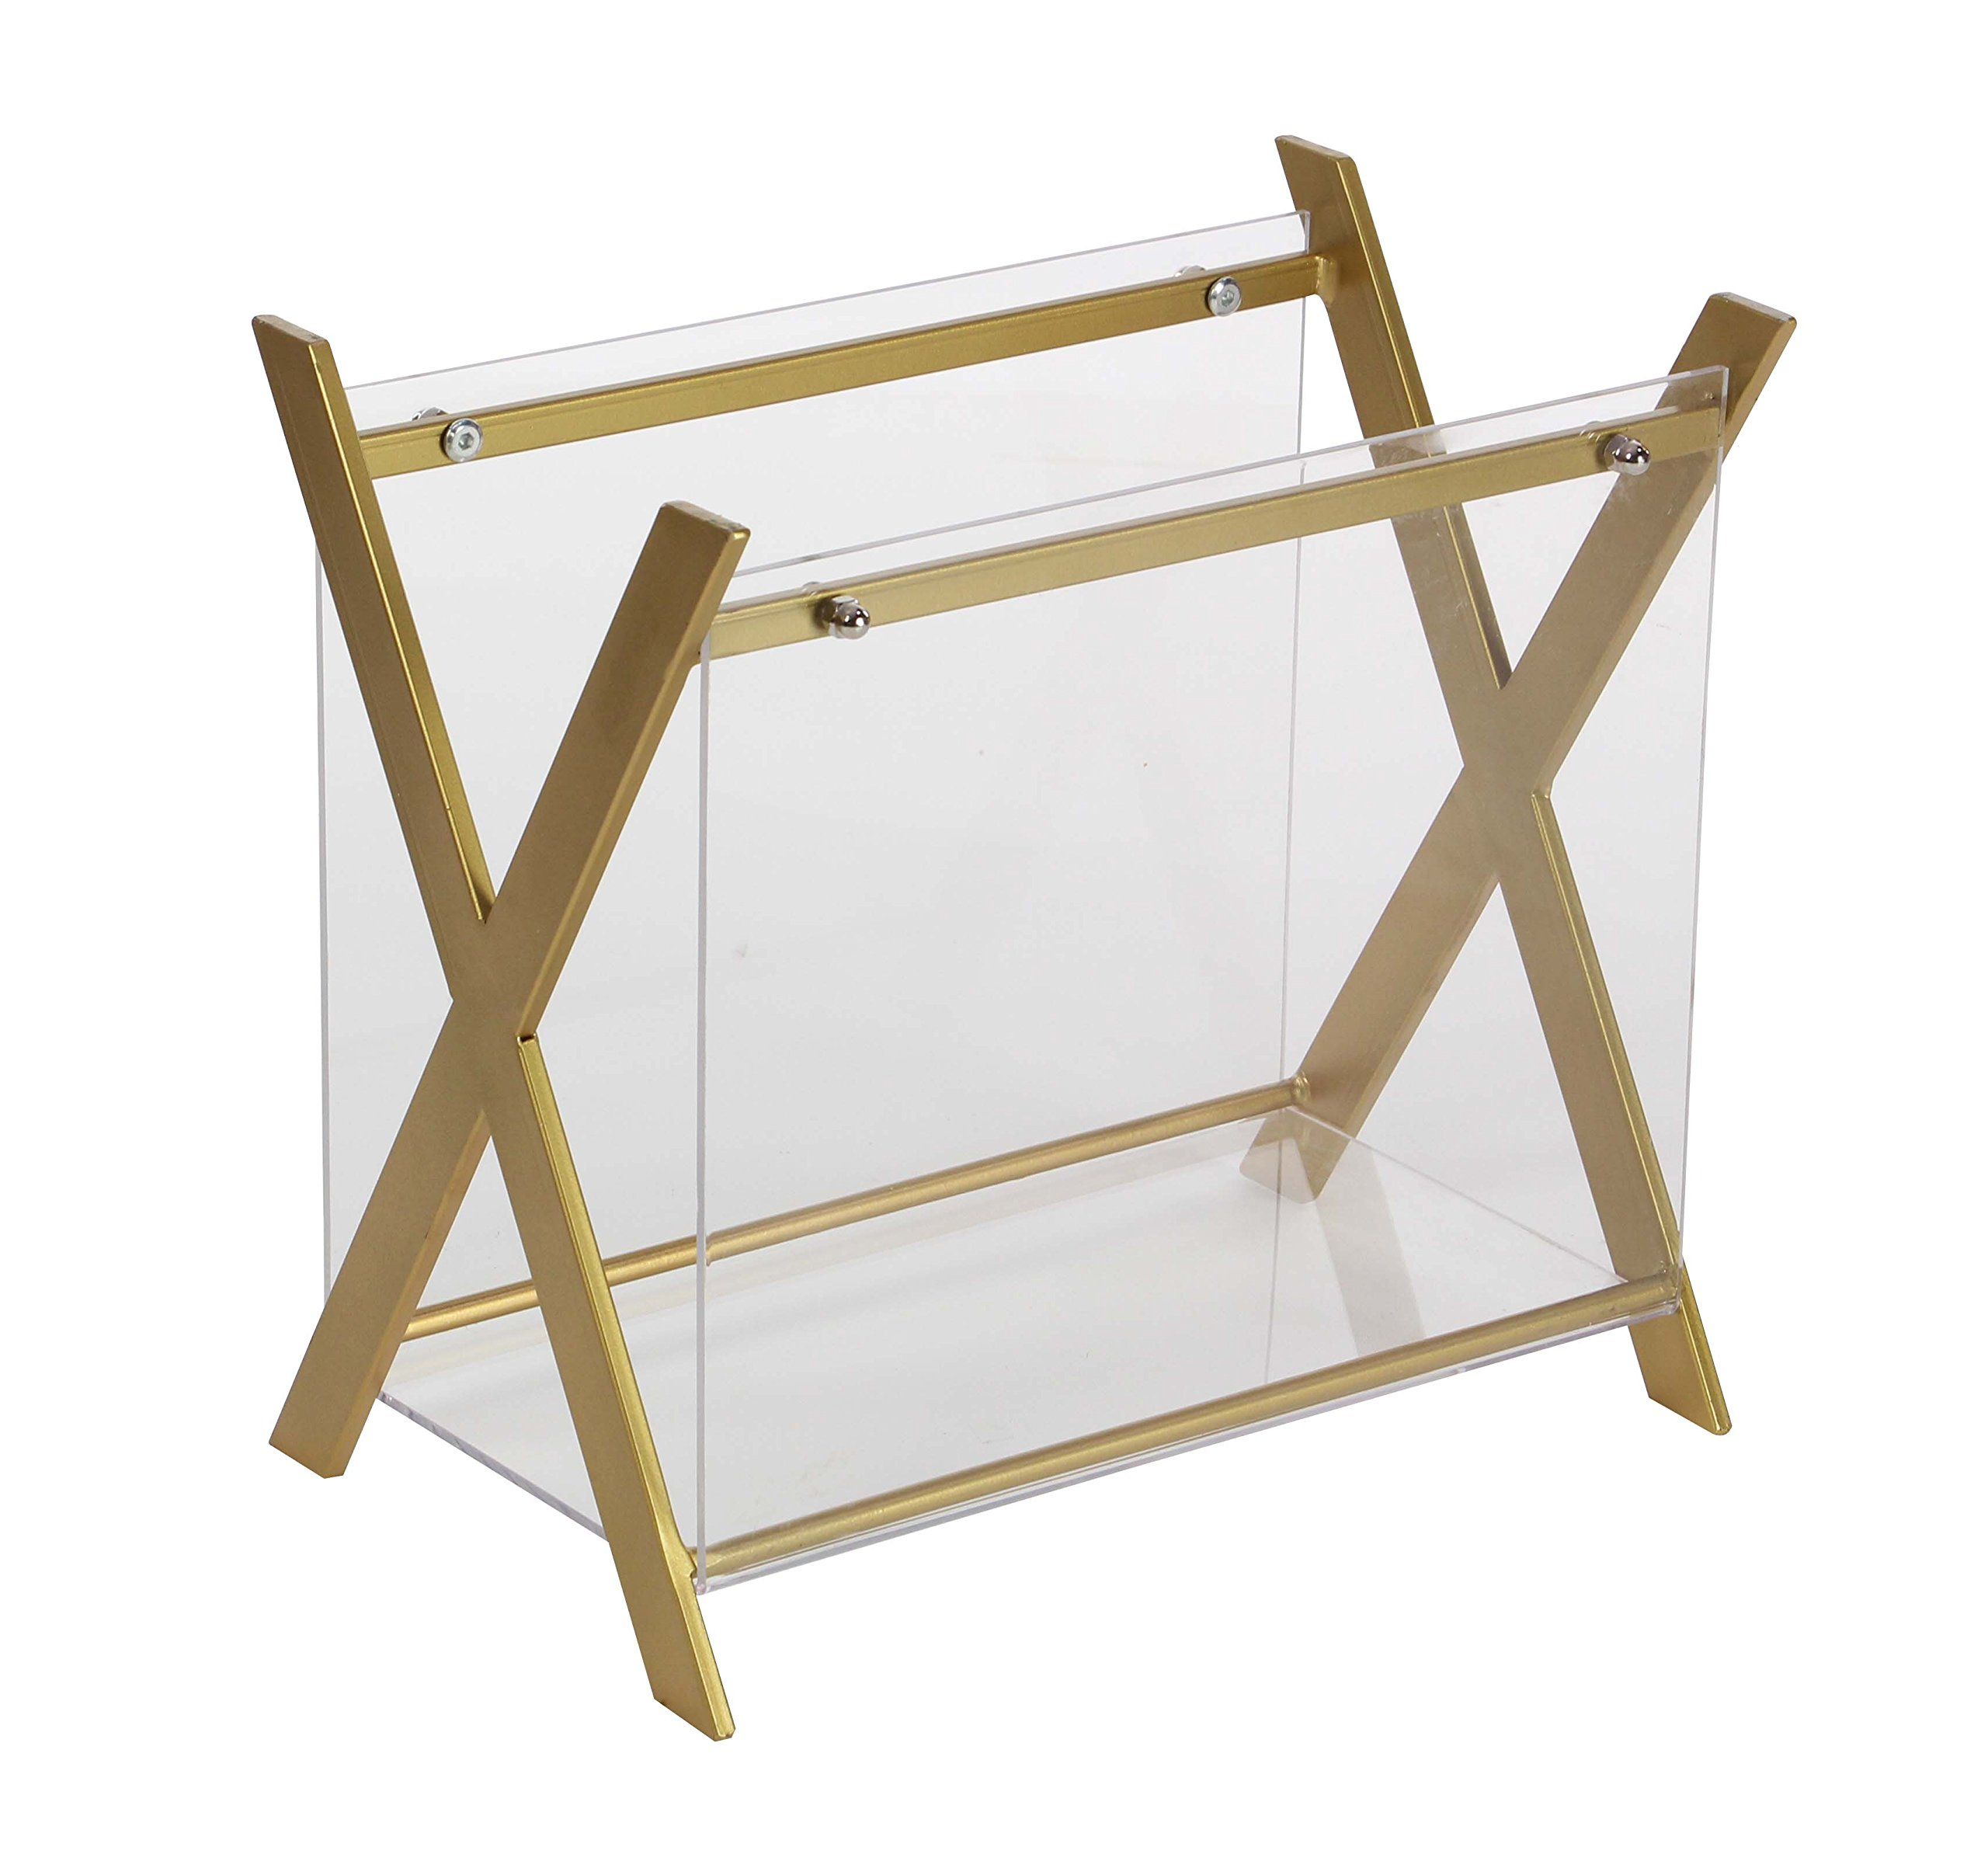 Deco 79 84392 Iron and Acrylic X-Shaped Magazine Holder, Gold/Clear